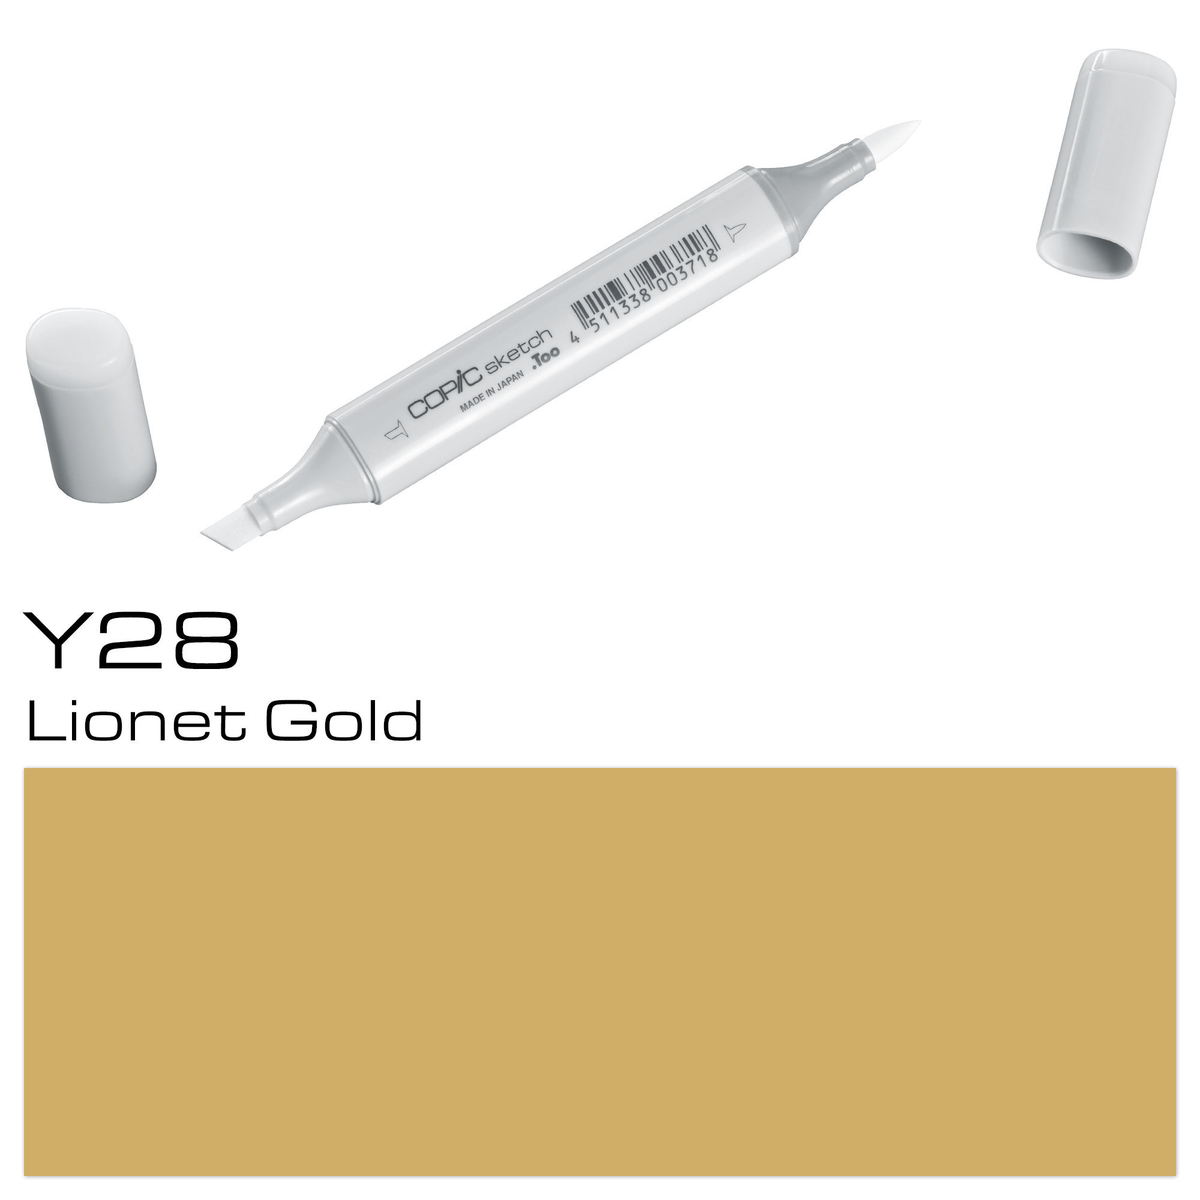 Copic Sketch Y 28 lionet gold